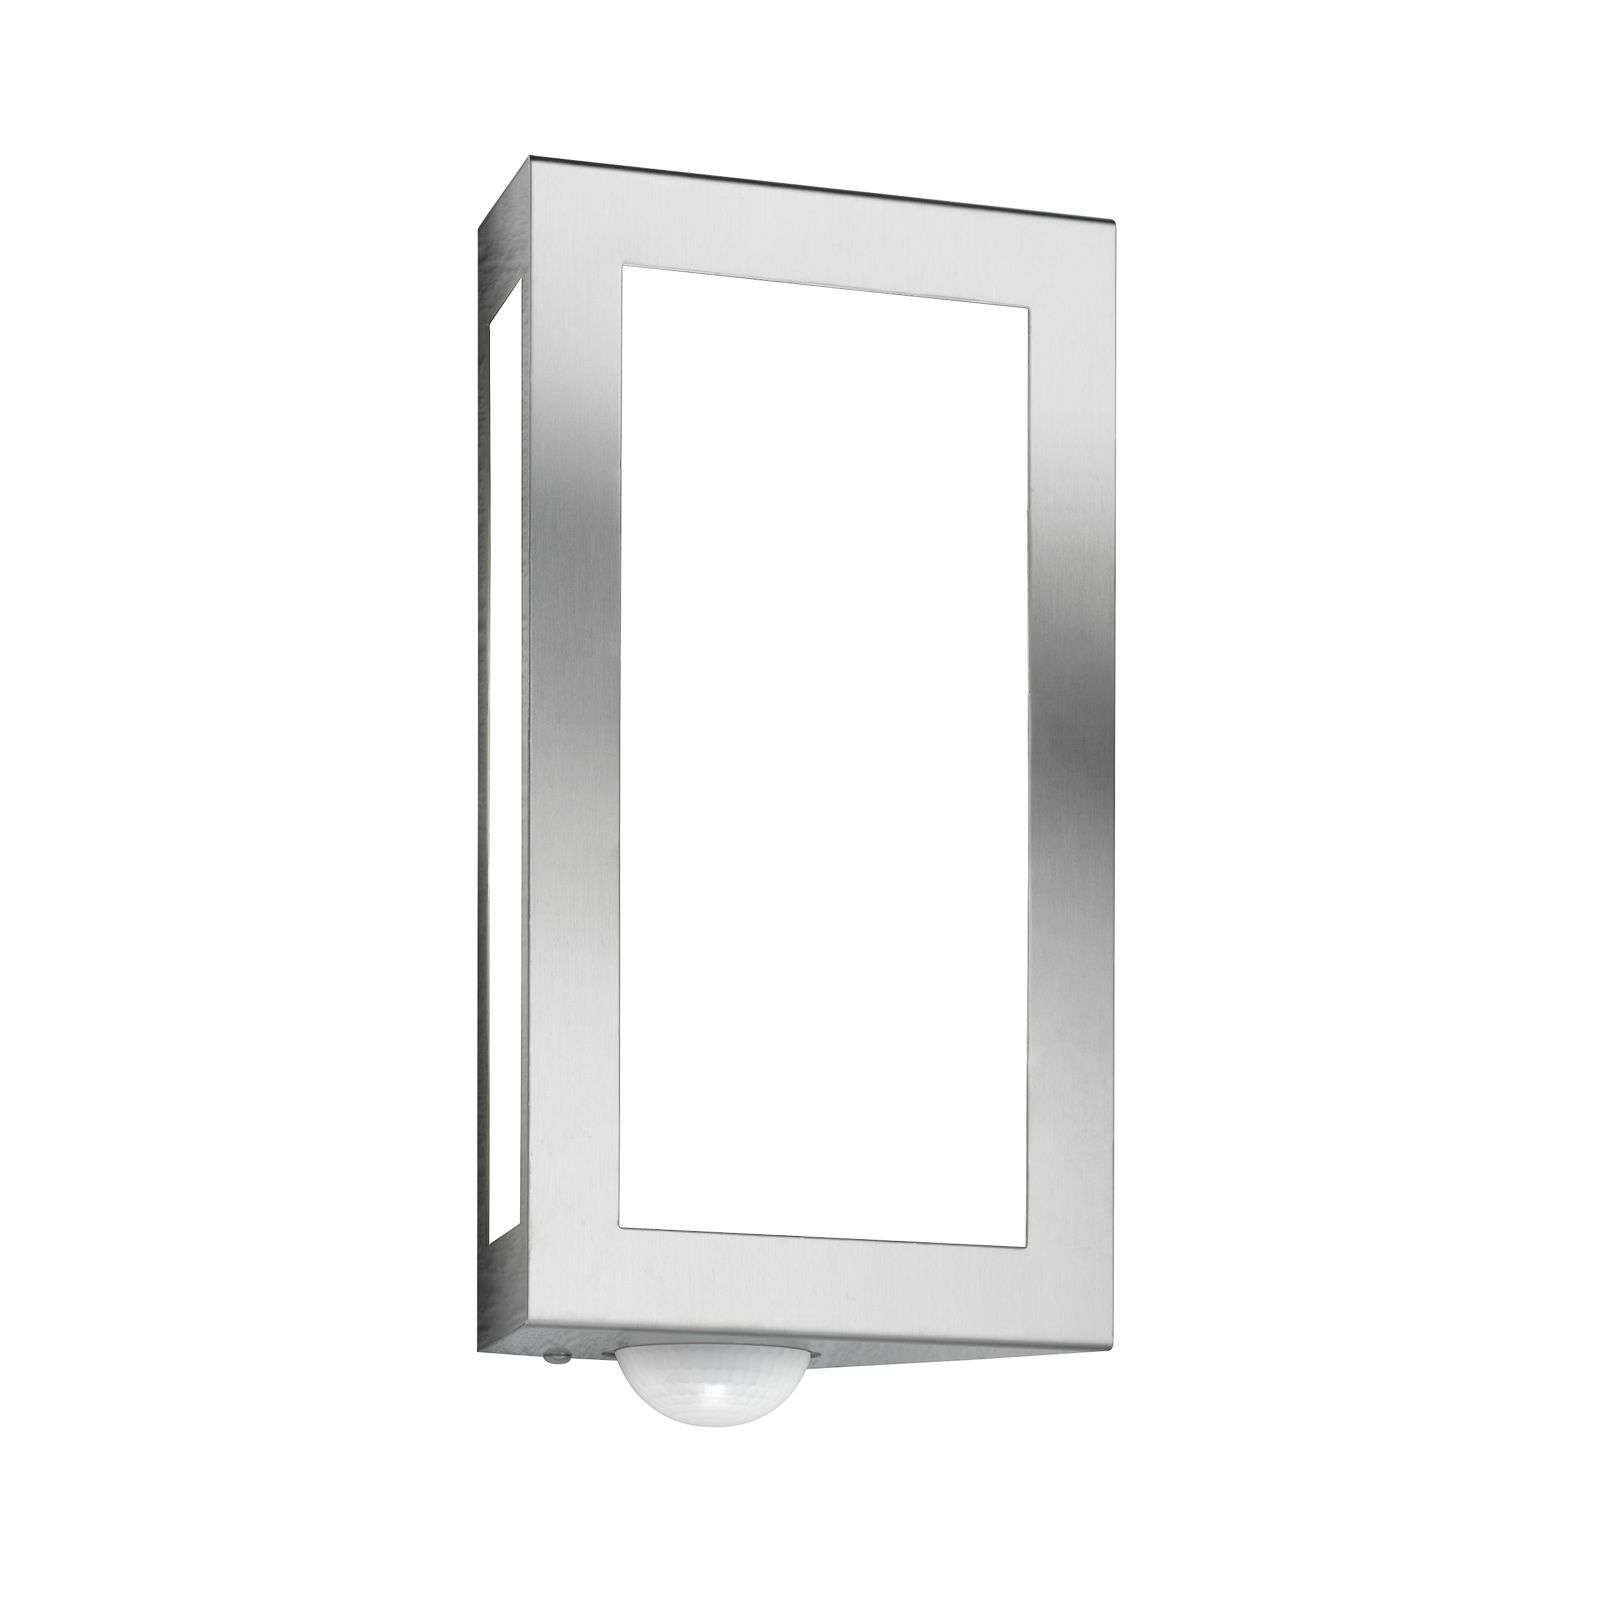 Aplique de pared exterior cuadrado Long con sensor